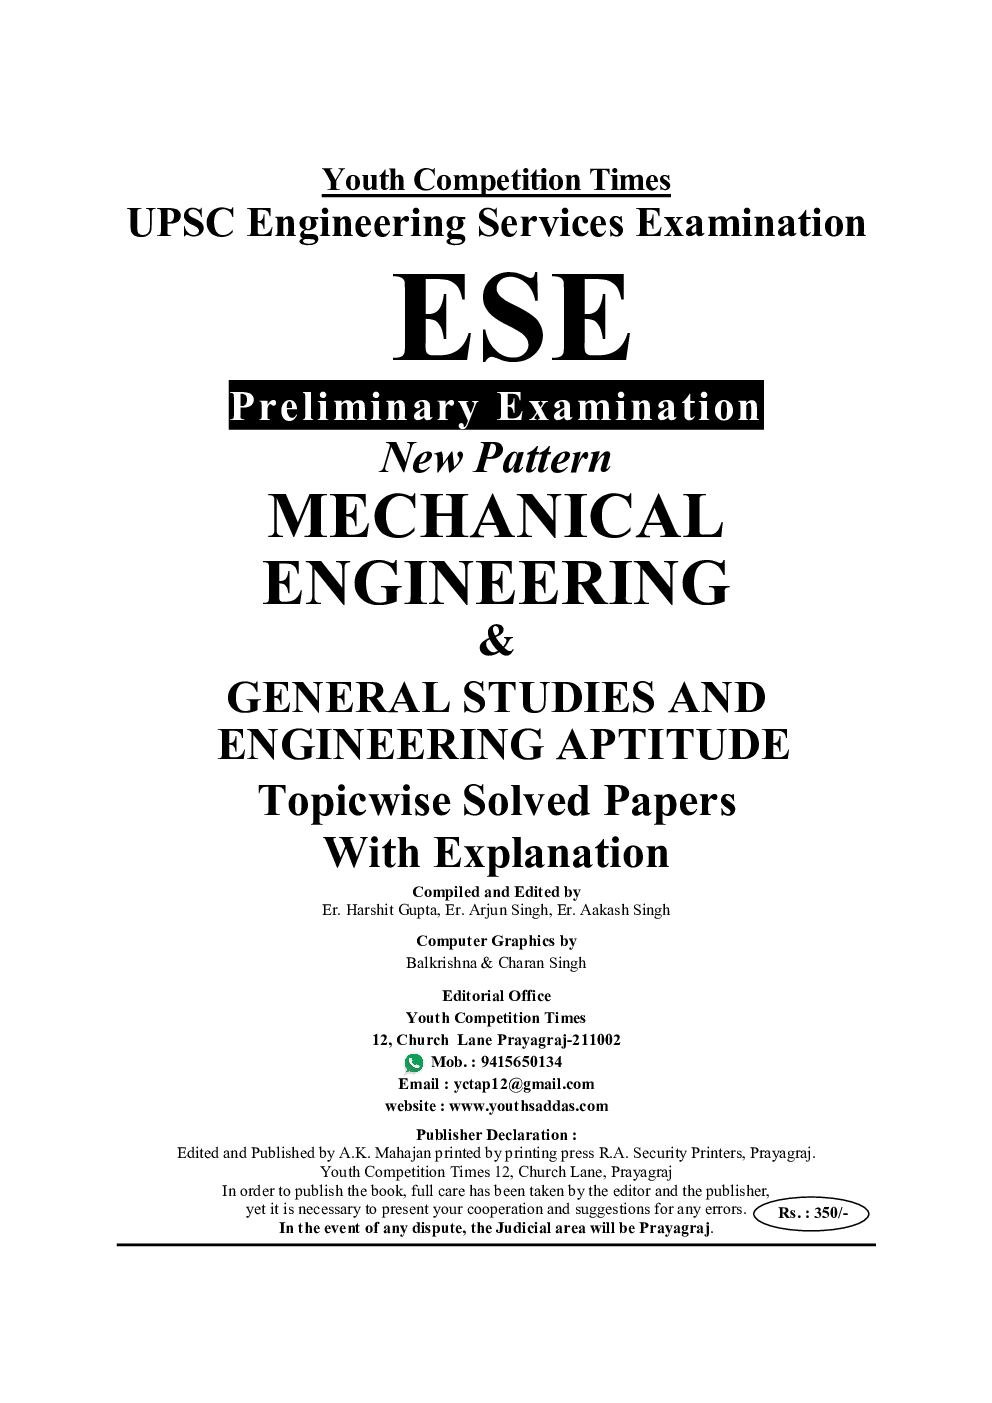 IES/ESE Prelims Exam Mechanical Engineering Solved Papers - Page 2